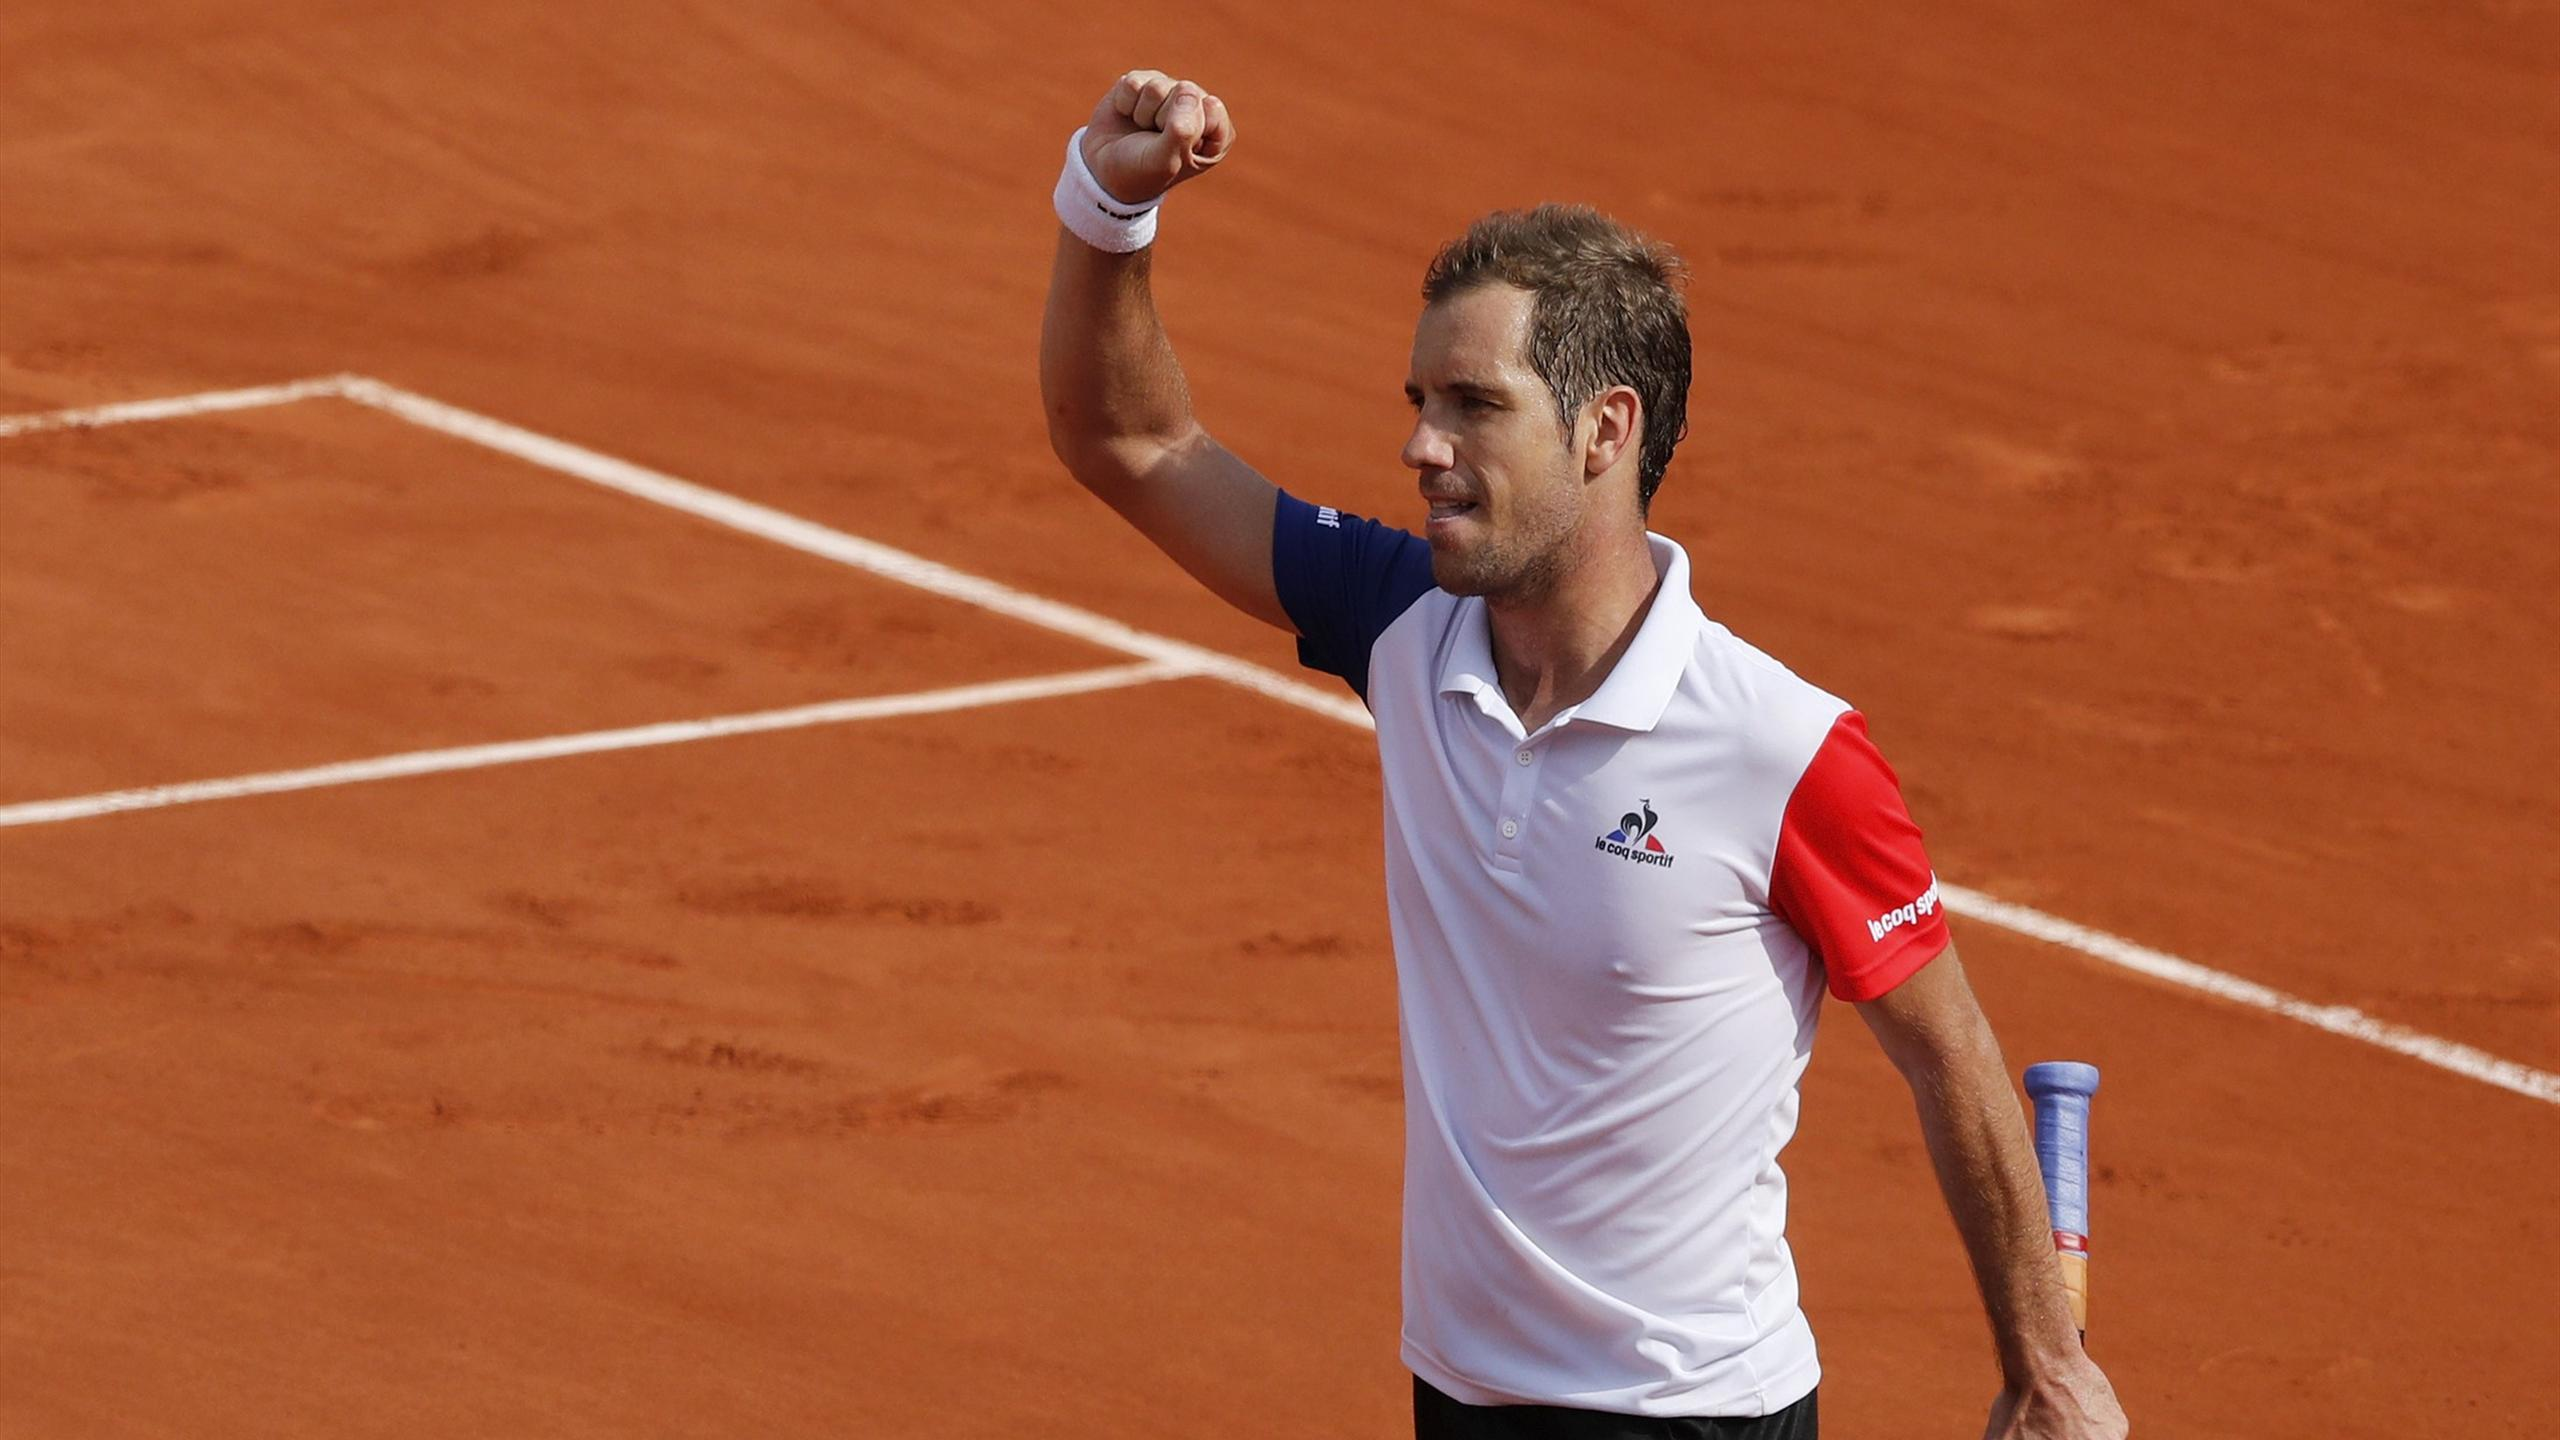 Richard Gasquet celebrates during the French Open at Roland Garros